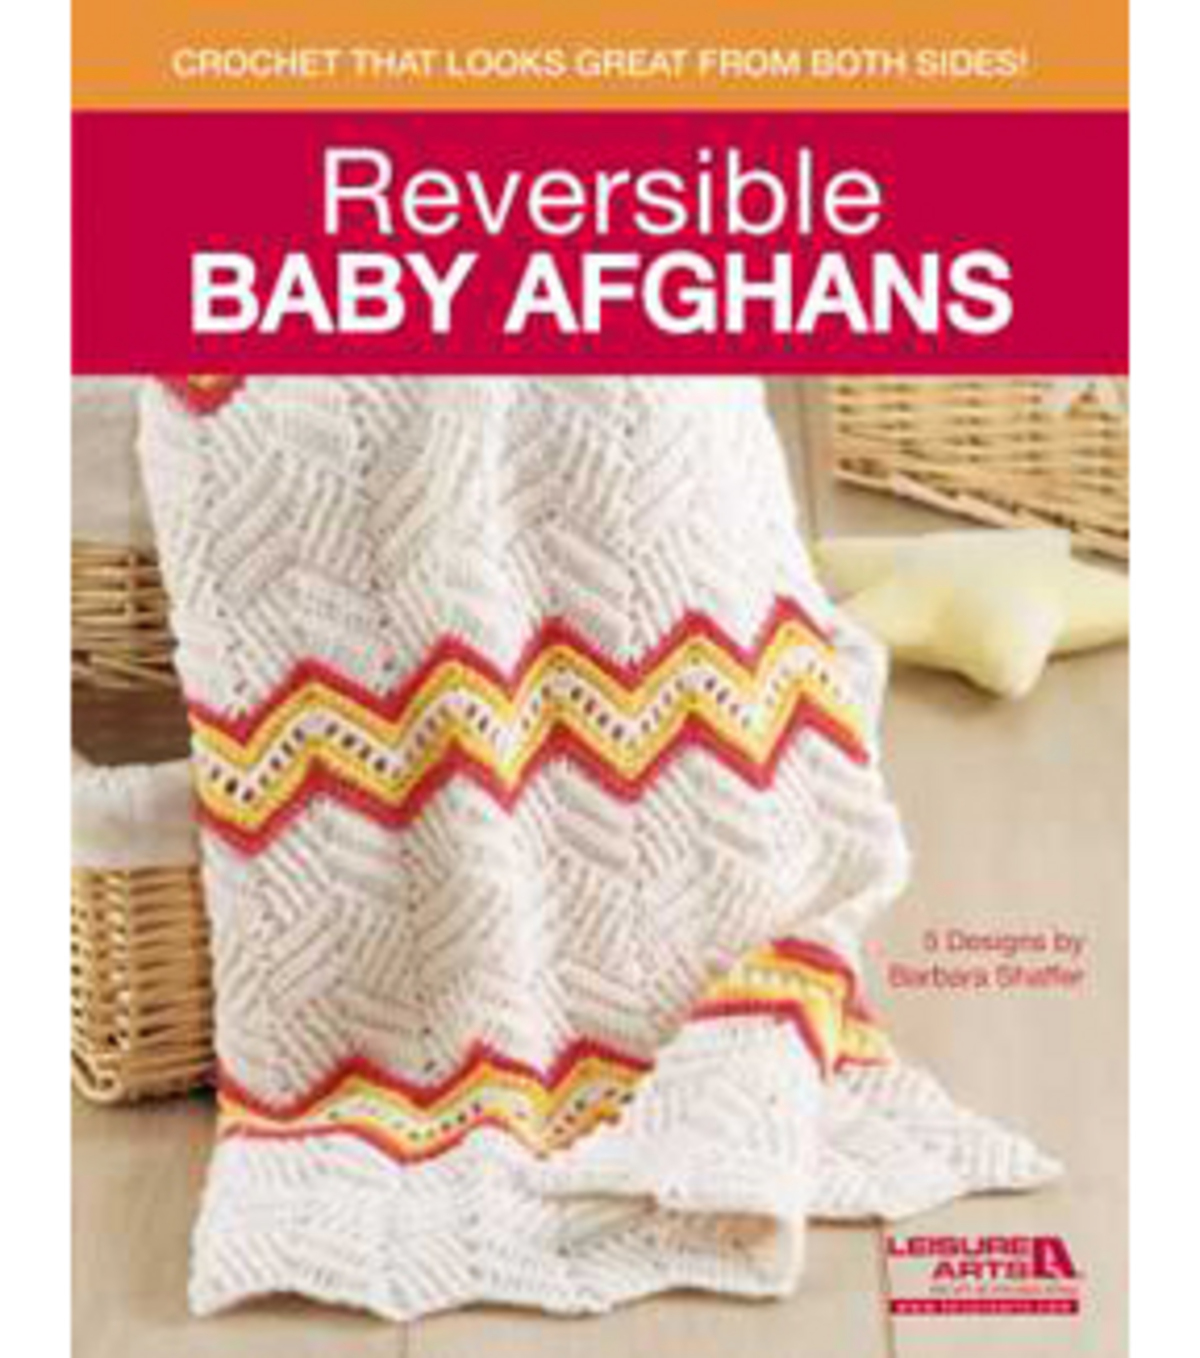 Reversible Baby Blankets